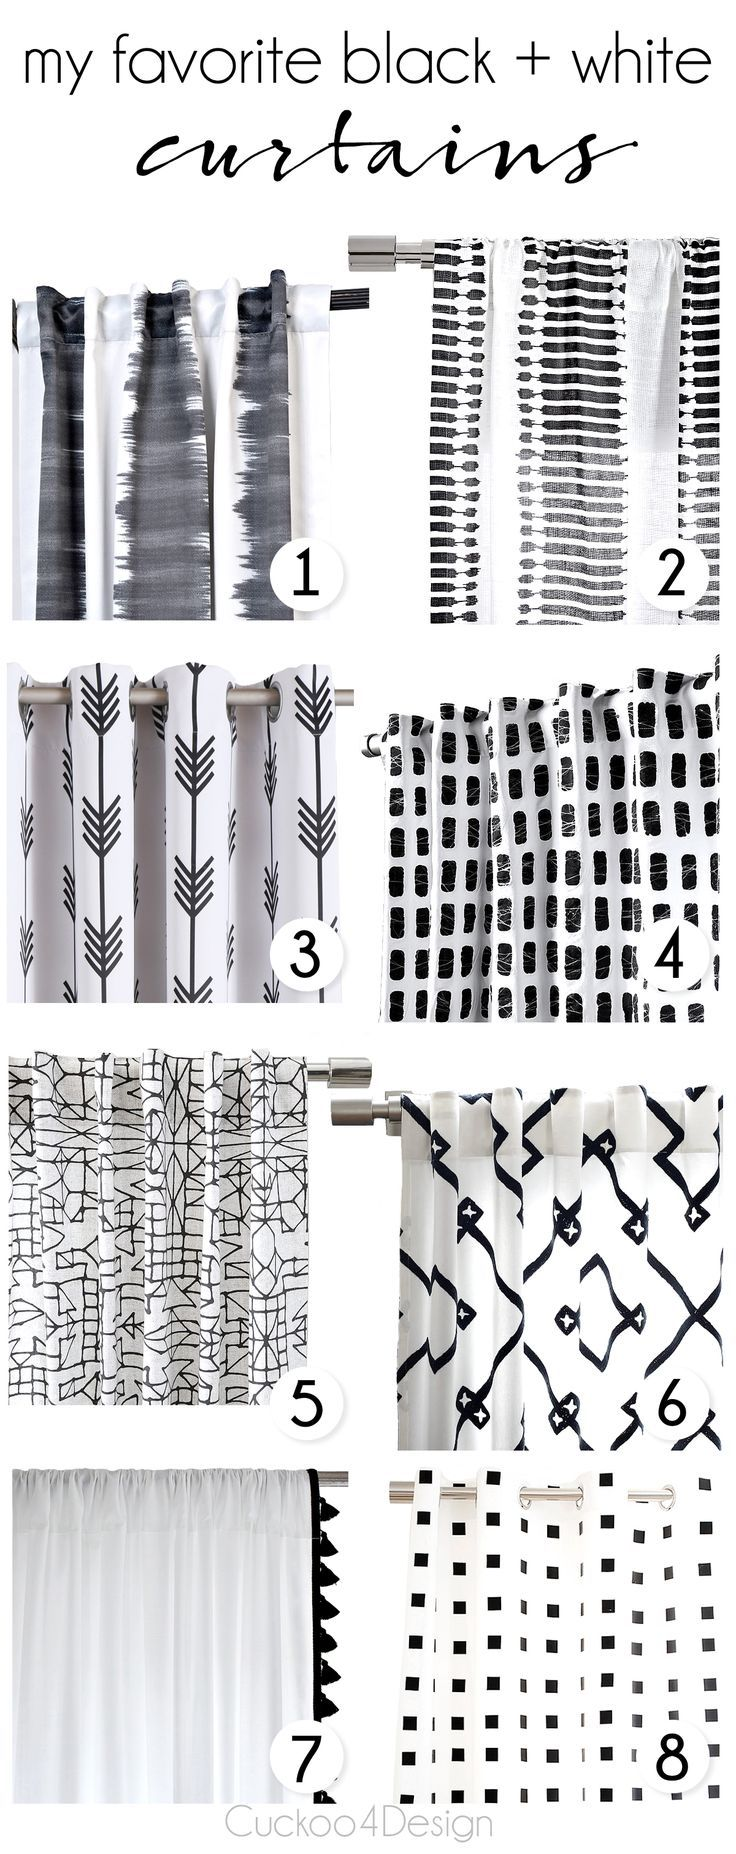 My favorite black and white curtains | Bloggers\' Best DIY ...